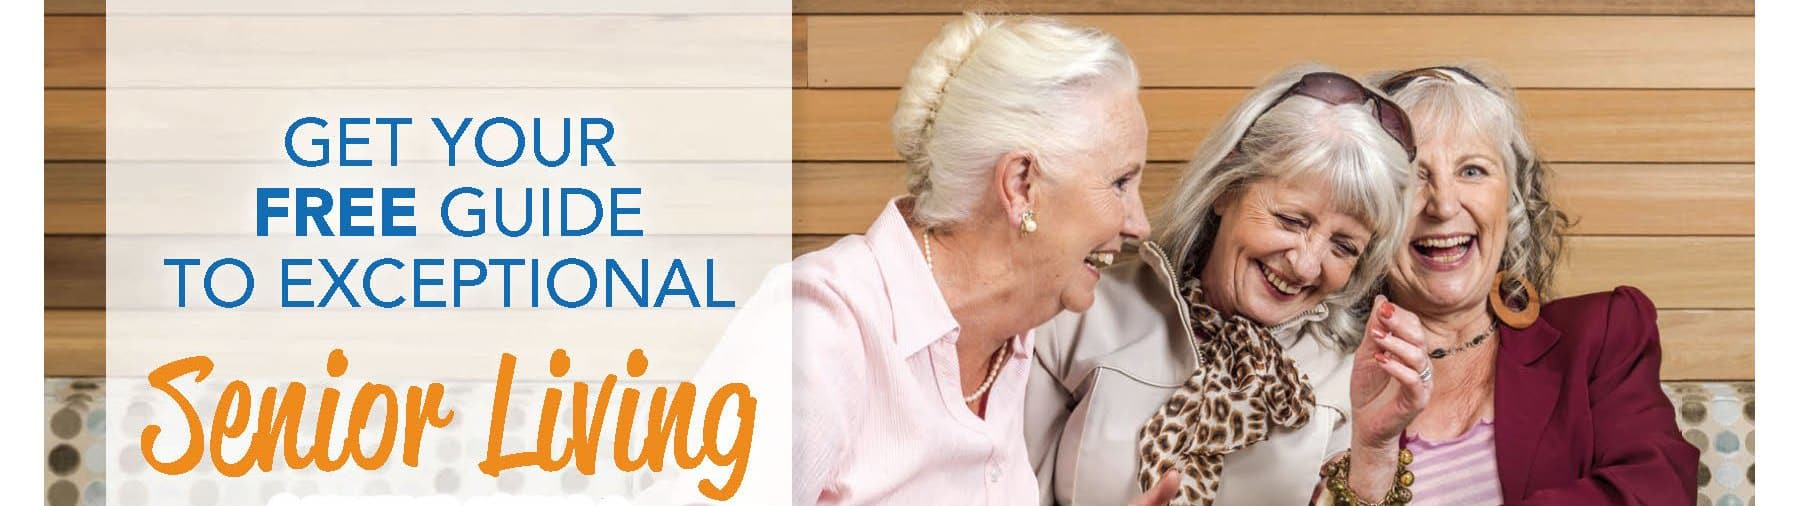 Get your free guide to exceptional senior living at Discovery Commons At Wildewood in California, Maryland